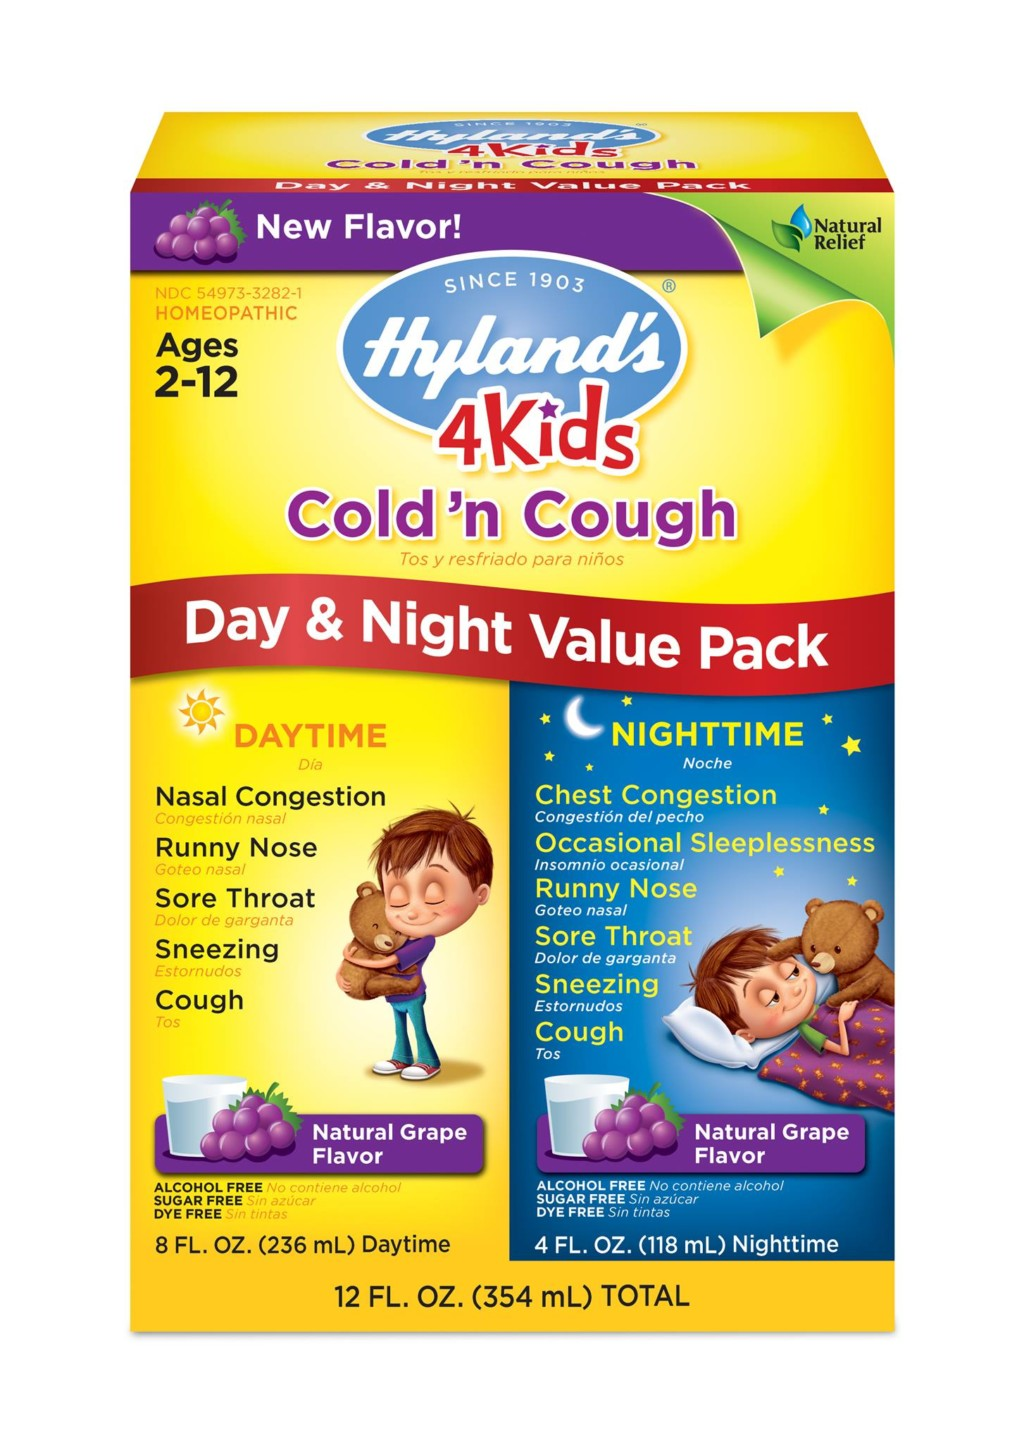 Being Prepared for Cold Season with Hylands Cold and Cough Remedy | Twin Cities Moms Blog